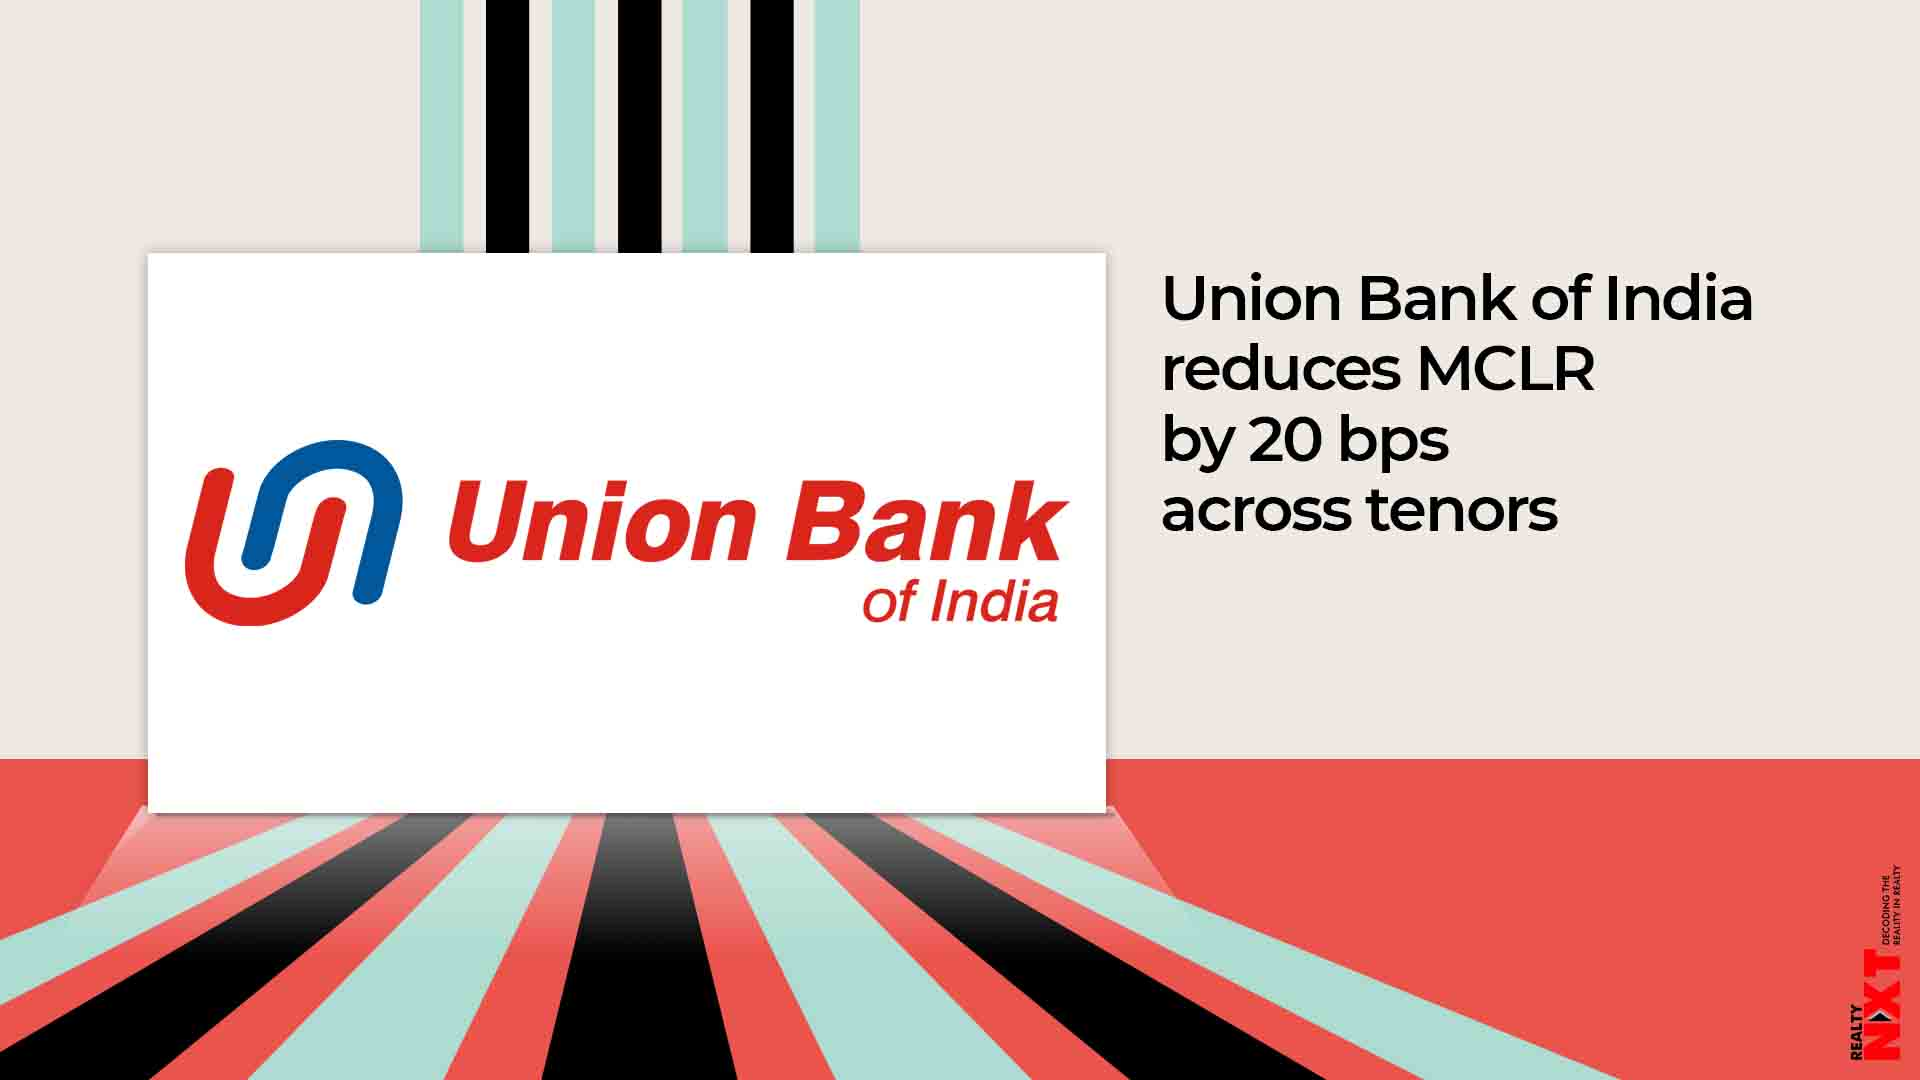 Union Bank of India reduces MCLR by 20 basis points across tenors